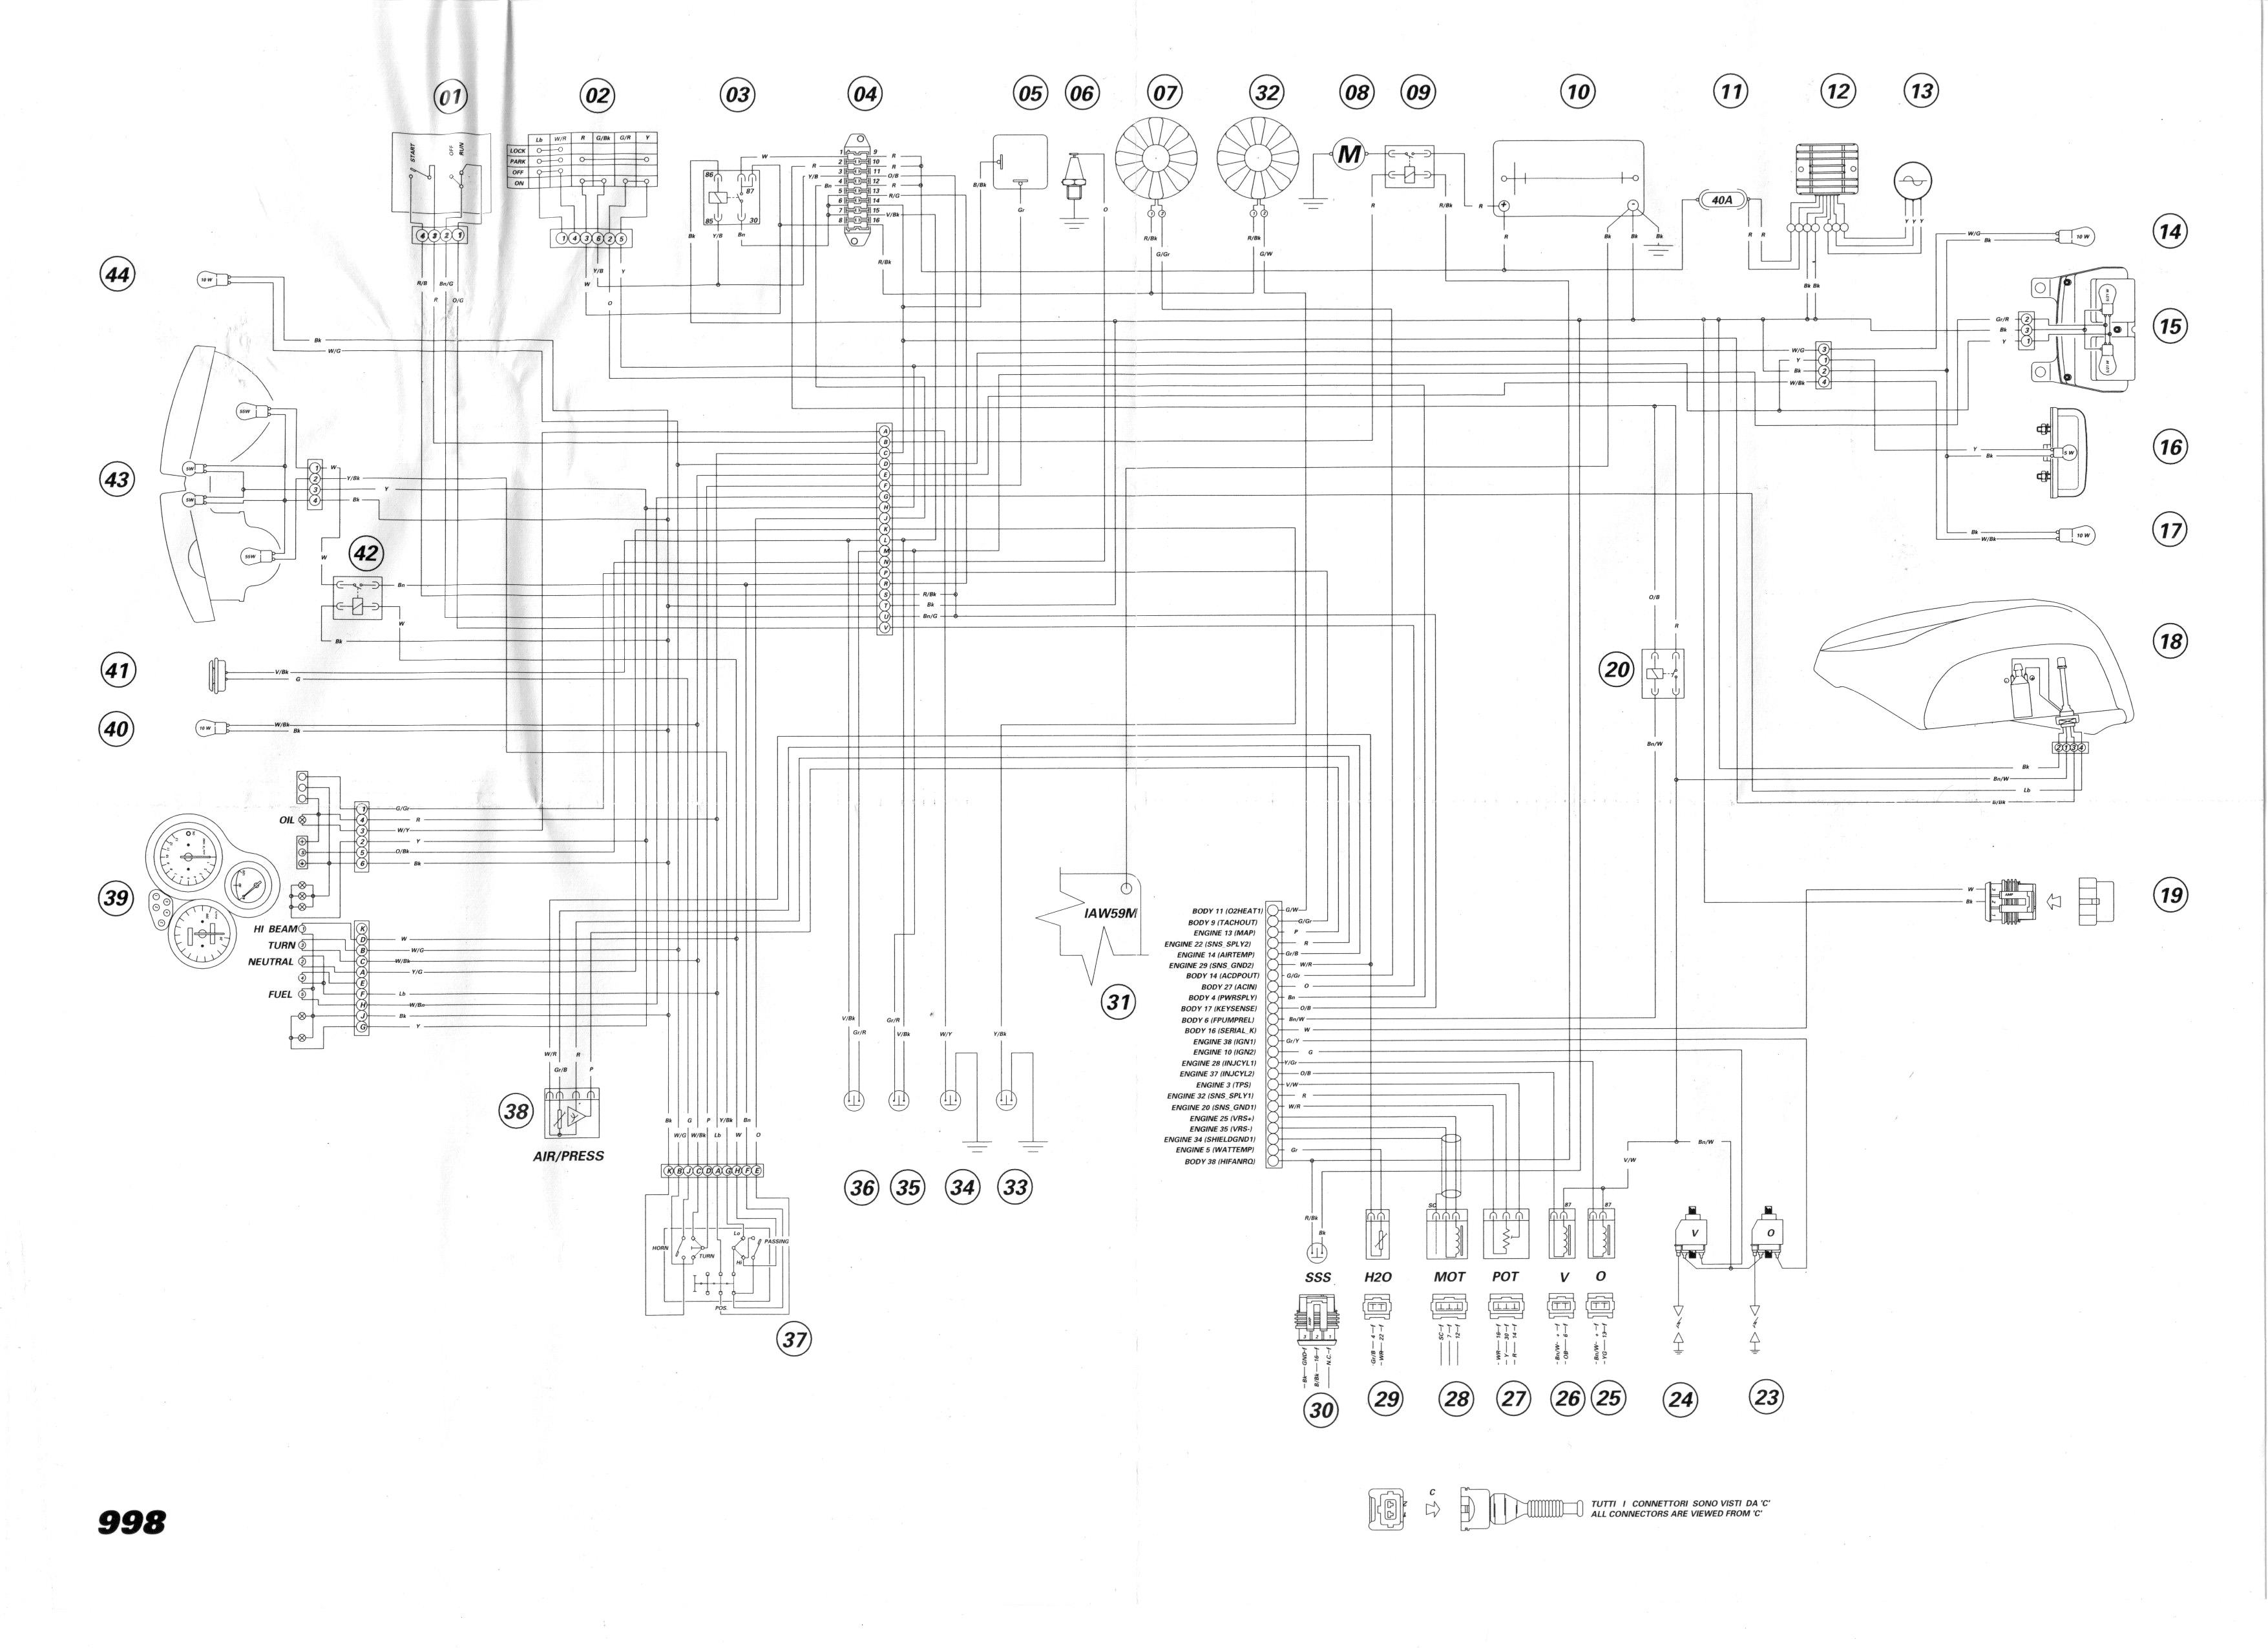 ducati 749 wiring diagram   25 wiring diagram images